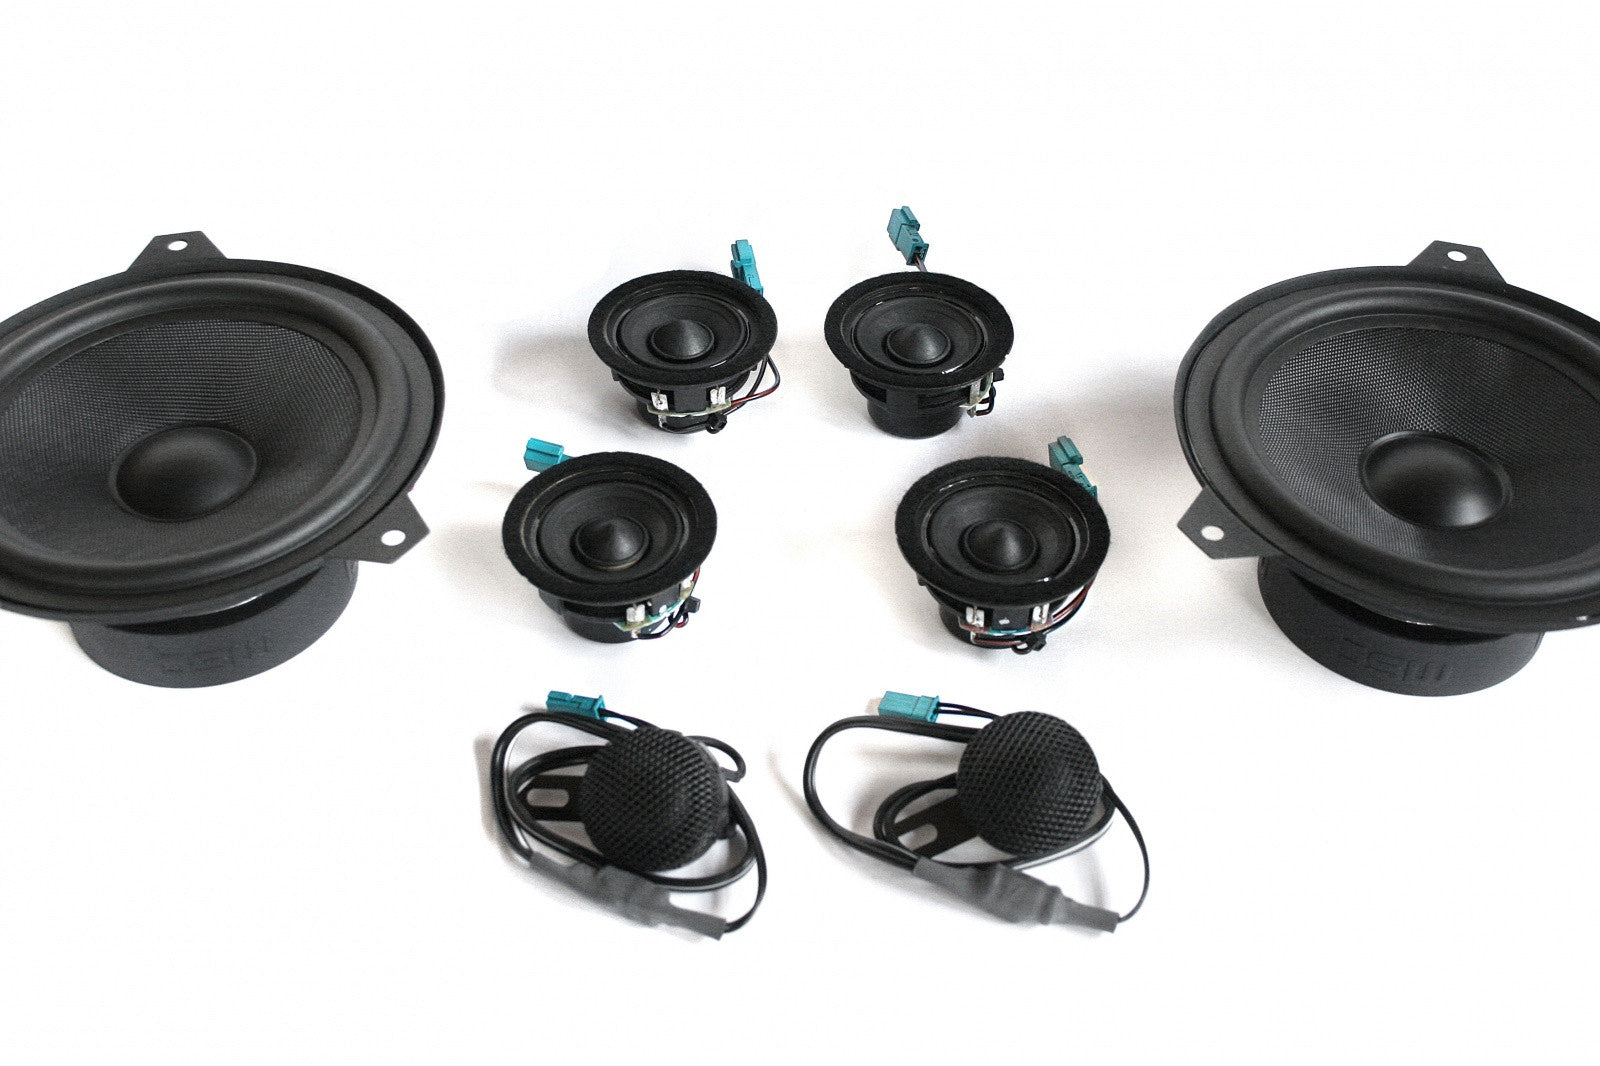 Stage One BMW Speaker Upgrade for E46 Wagon with Harman Kardon